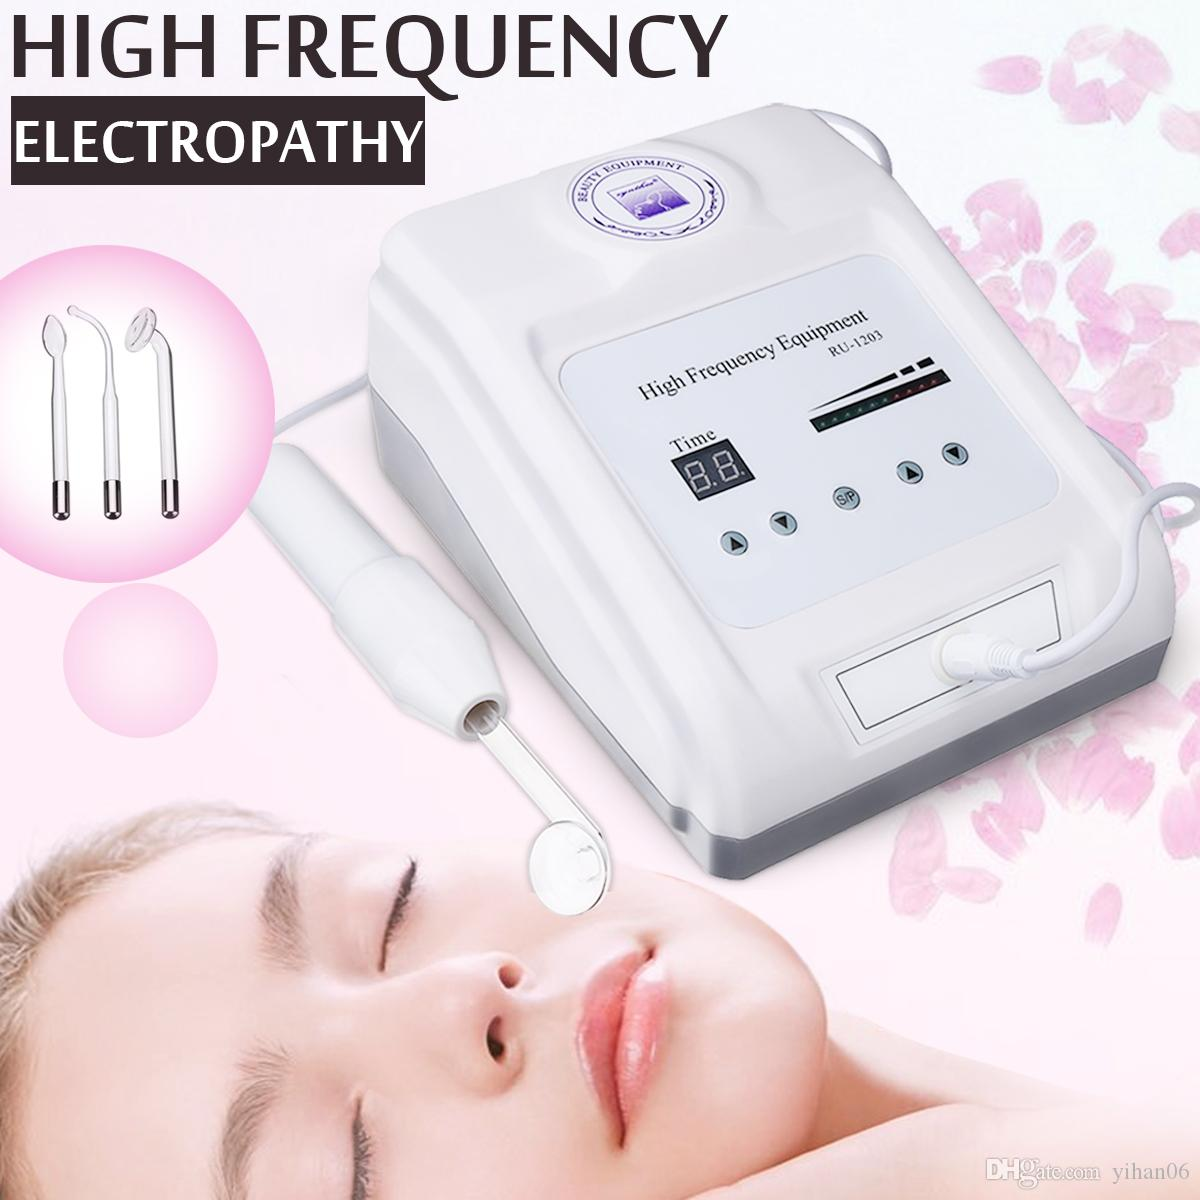 Professional Treatment Of Acne High Frequency Electropathy Healing Acne Professional Facial Skin Beauty Machine